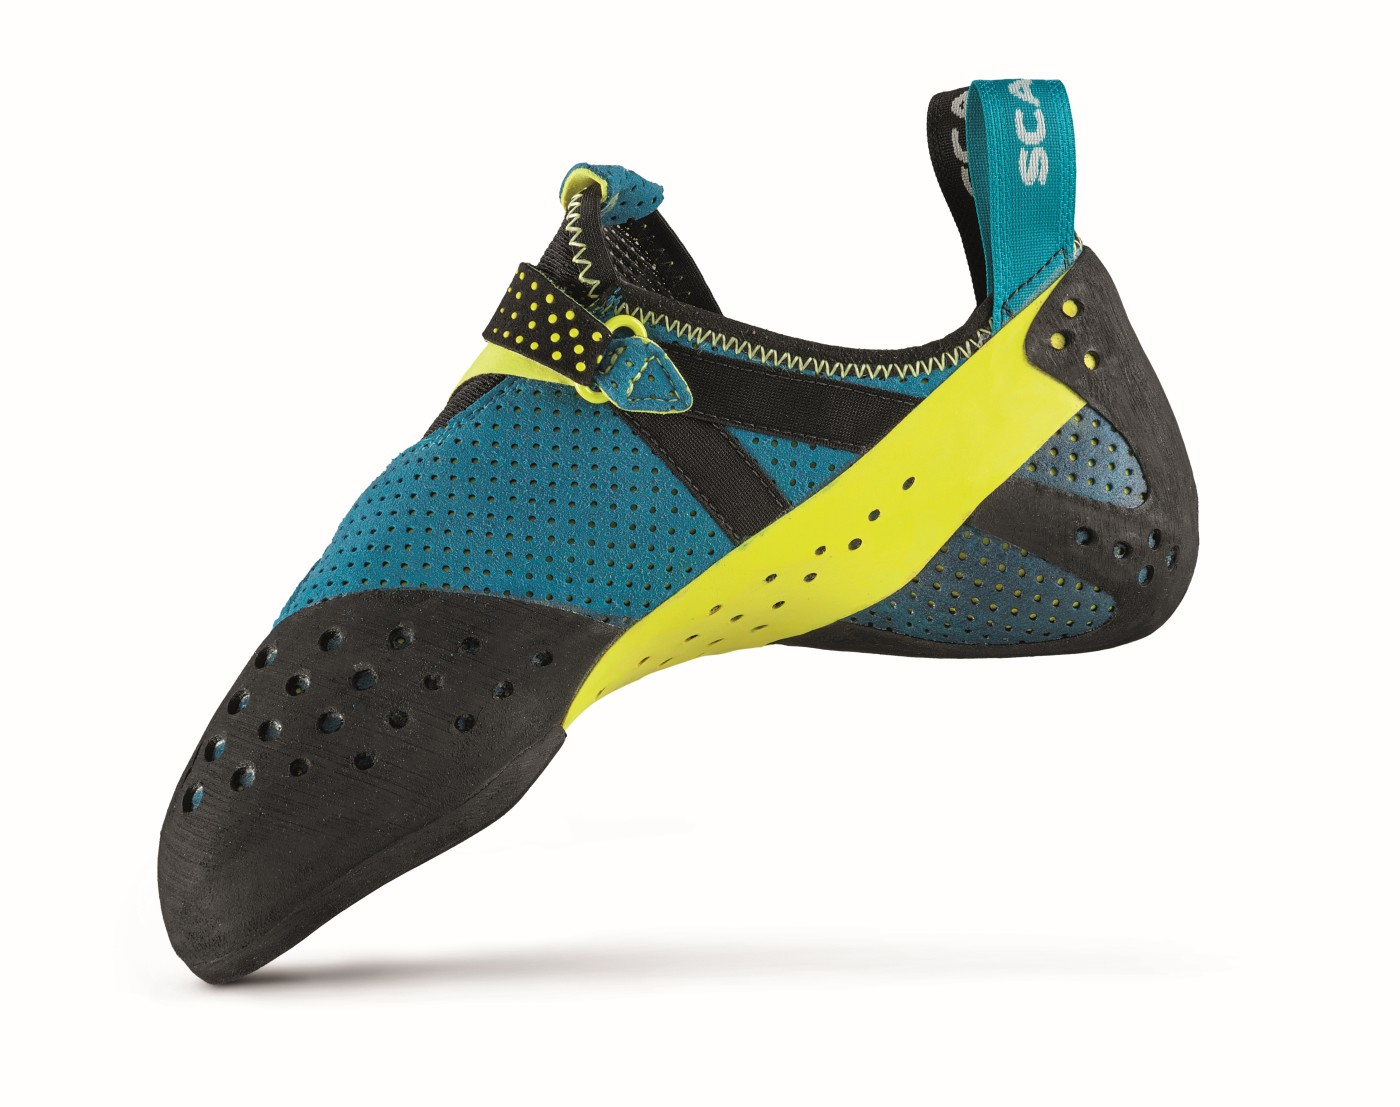 Scarpa Furia Air baltic blue/yellow-30